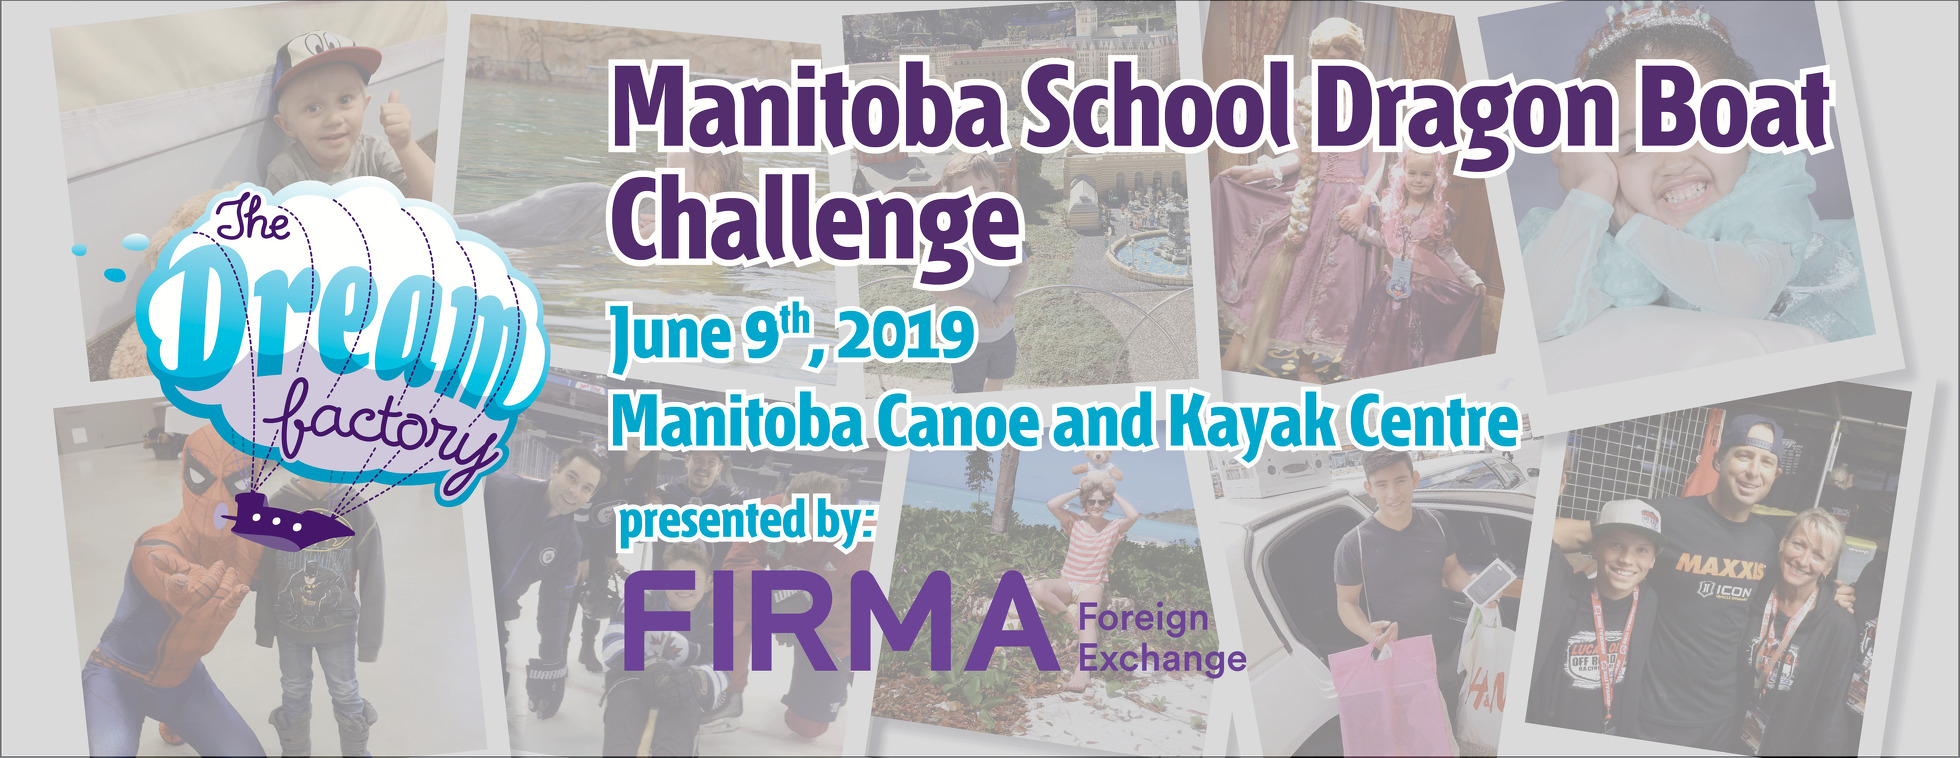 The Dream Factory Manitoba School Dragon Boat Challenge, Presented by FIRMA Foreign Exchange